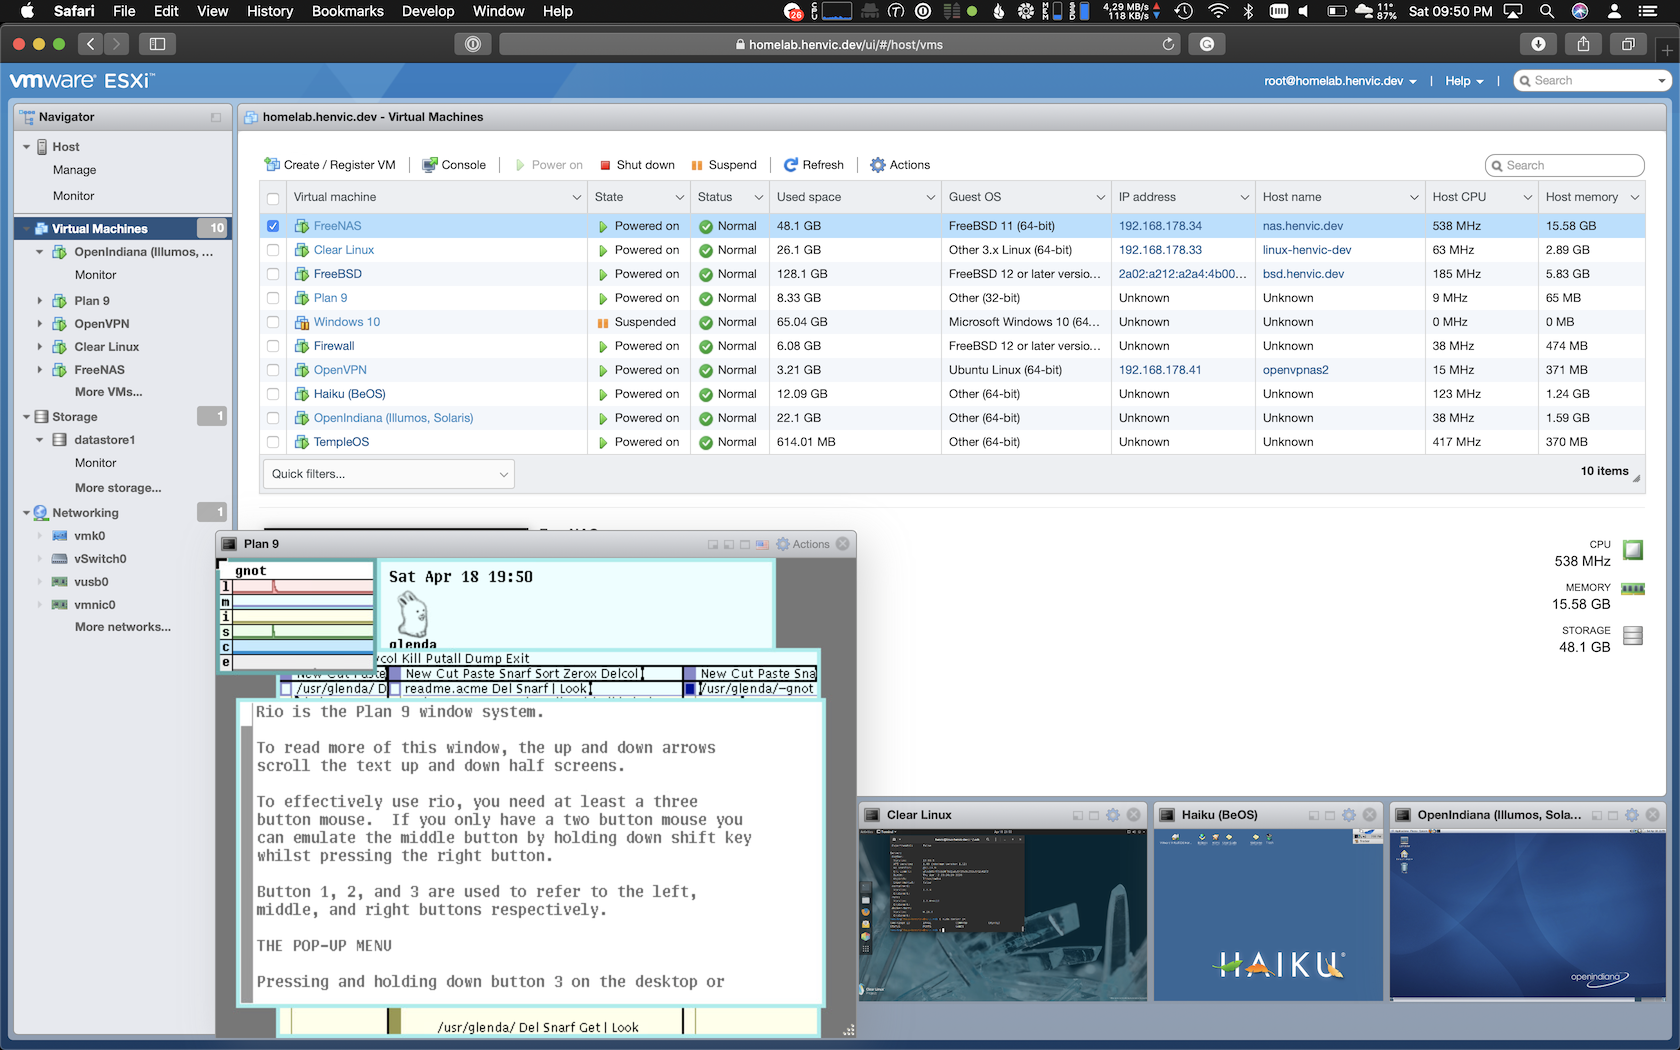 VMware ESXi 7 web client showing a virtual machine console running Plan 9 from Bell Labs